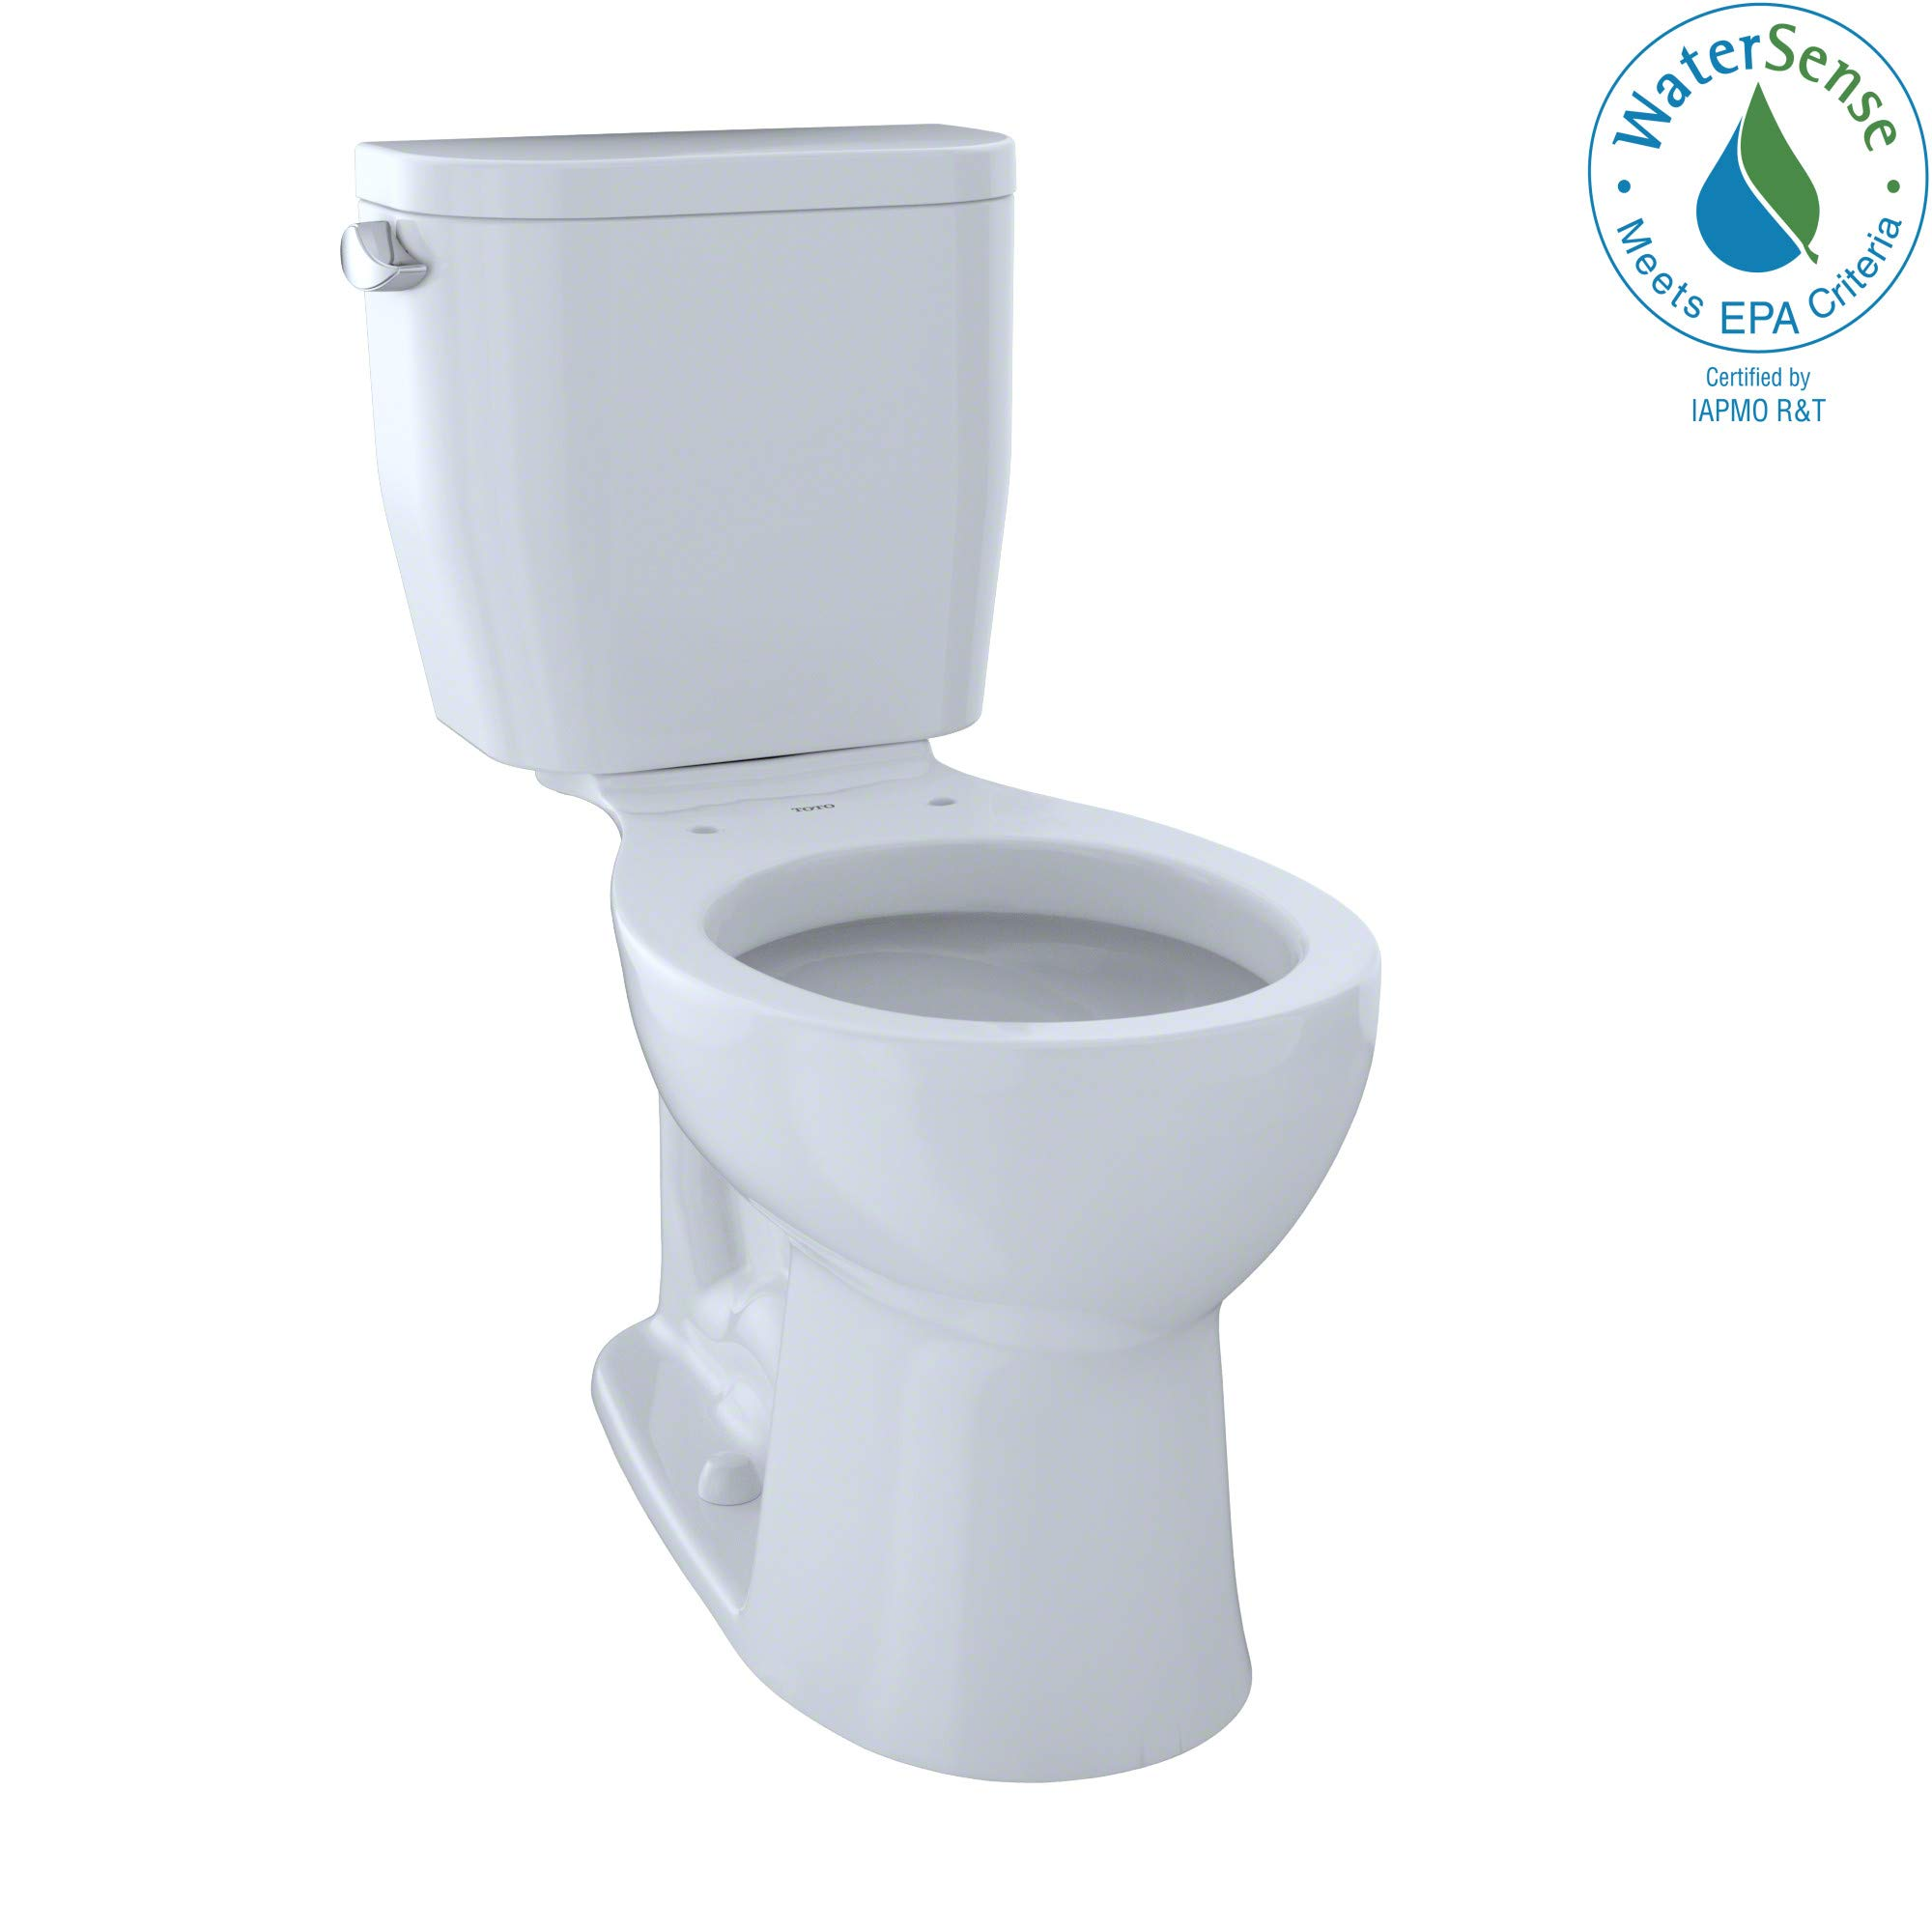 TOTO CST243EF#01 Entrada Two-Piece Round 1.28 GPF Universal Height Toilet, Cotton White by TOTO